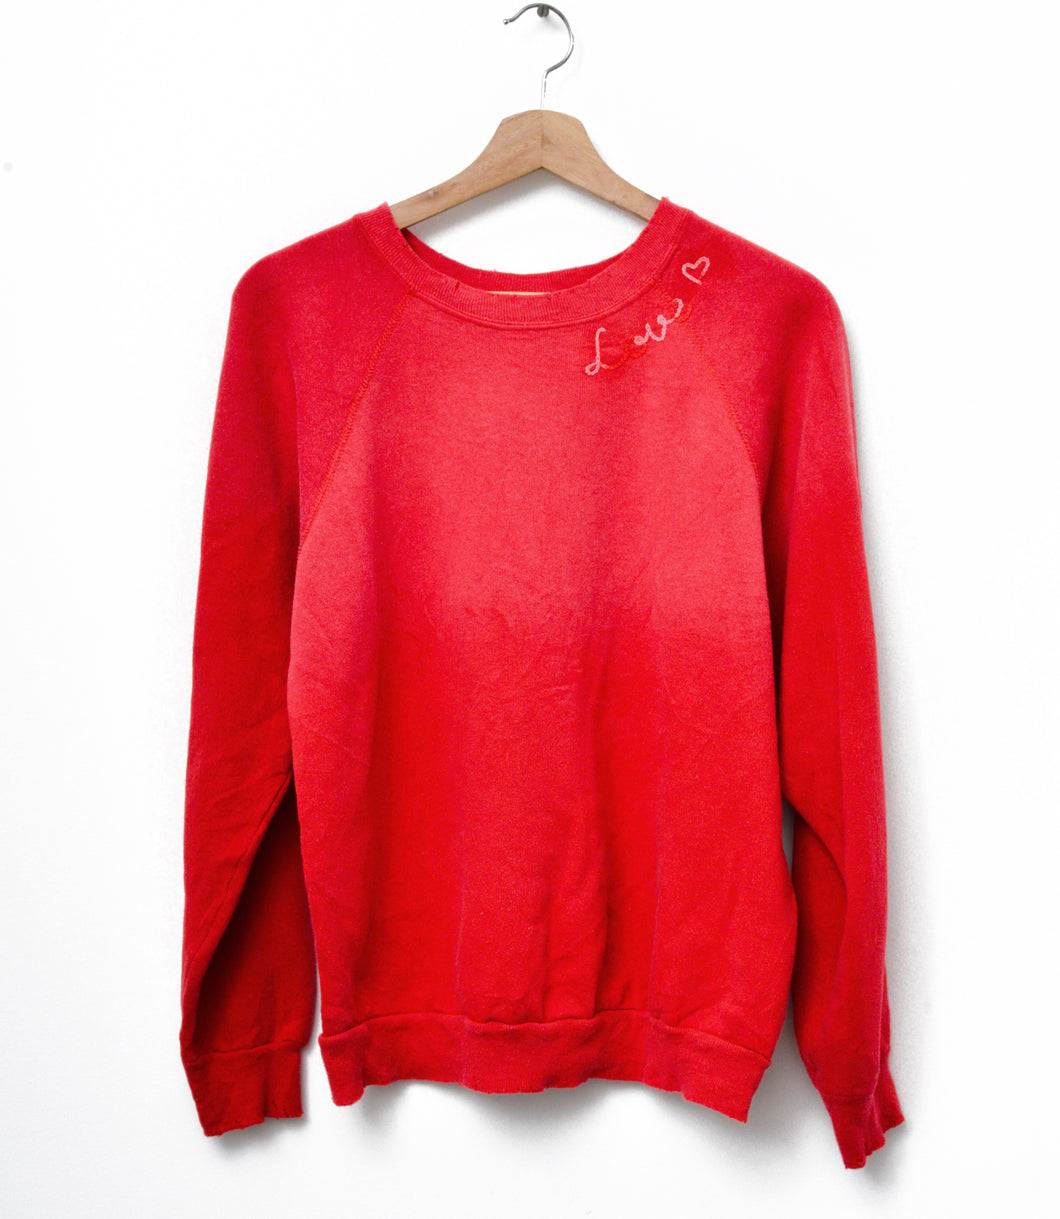 Love ❤️Sweatshirt - Red